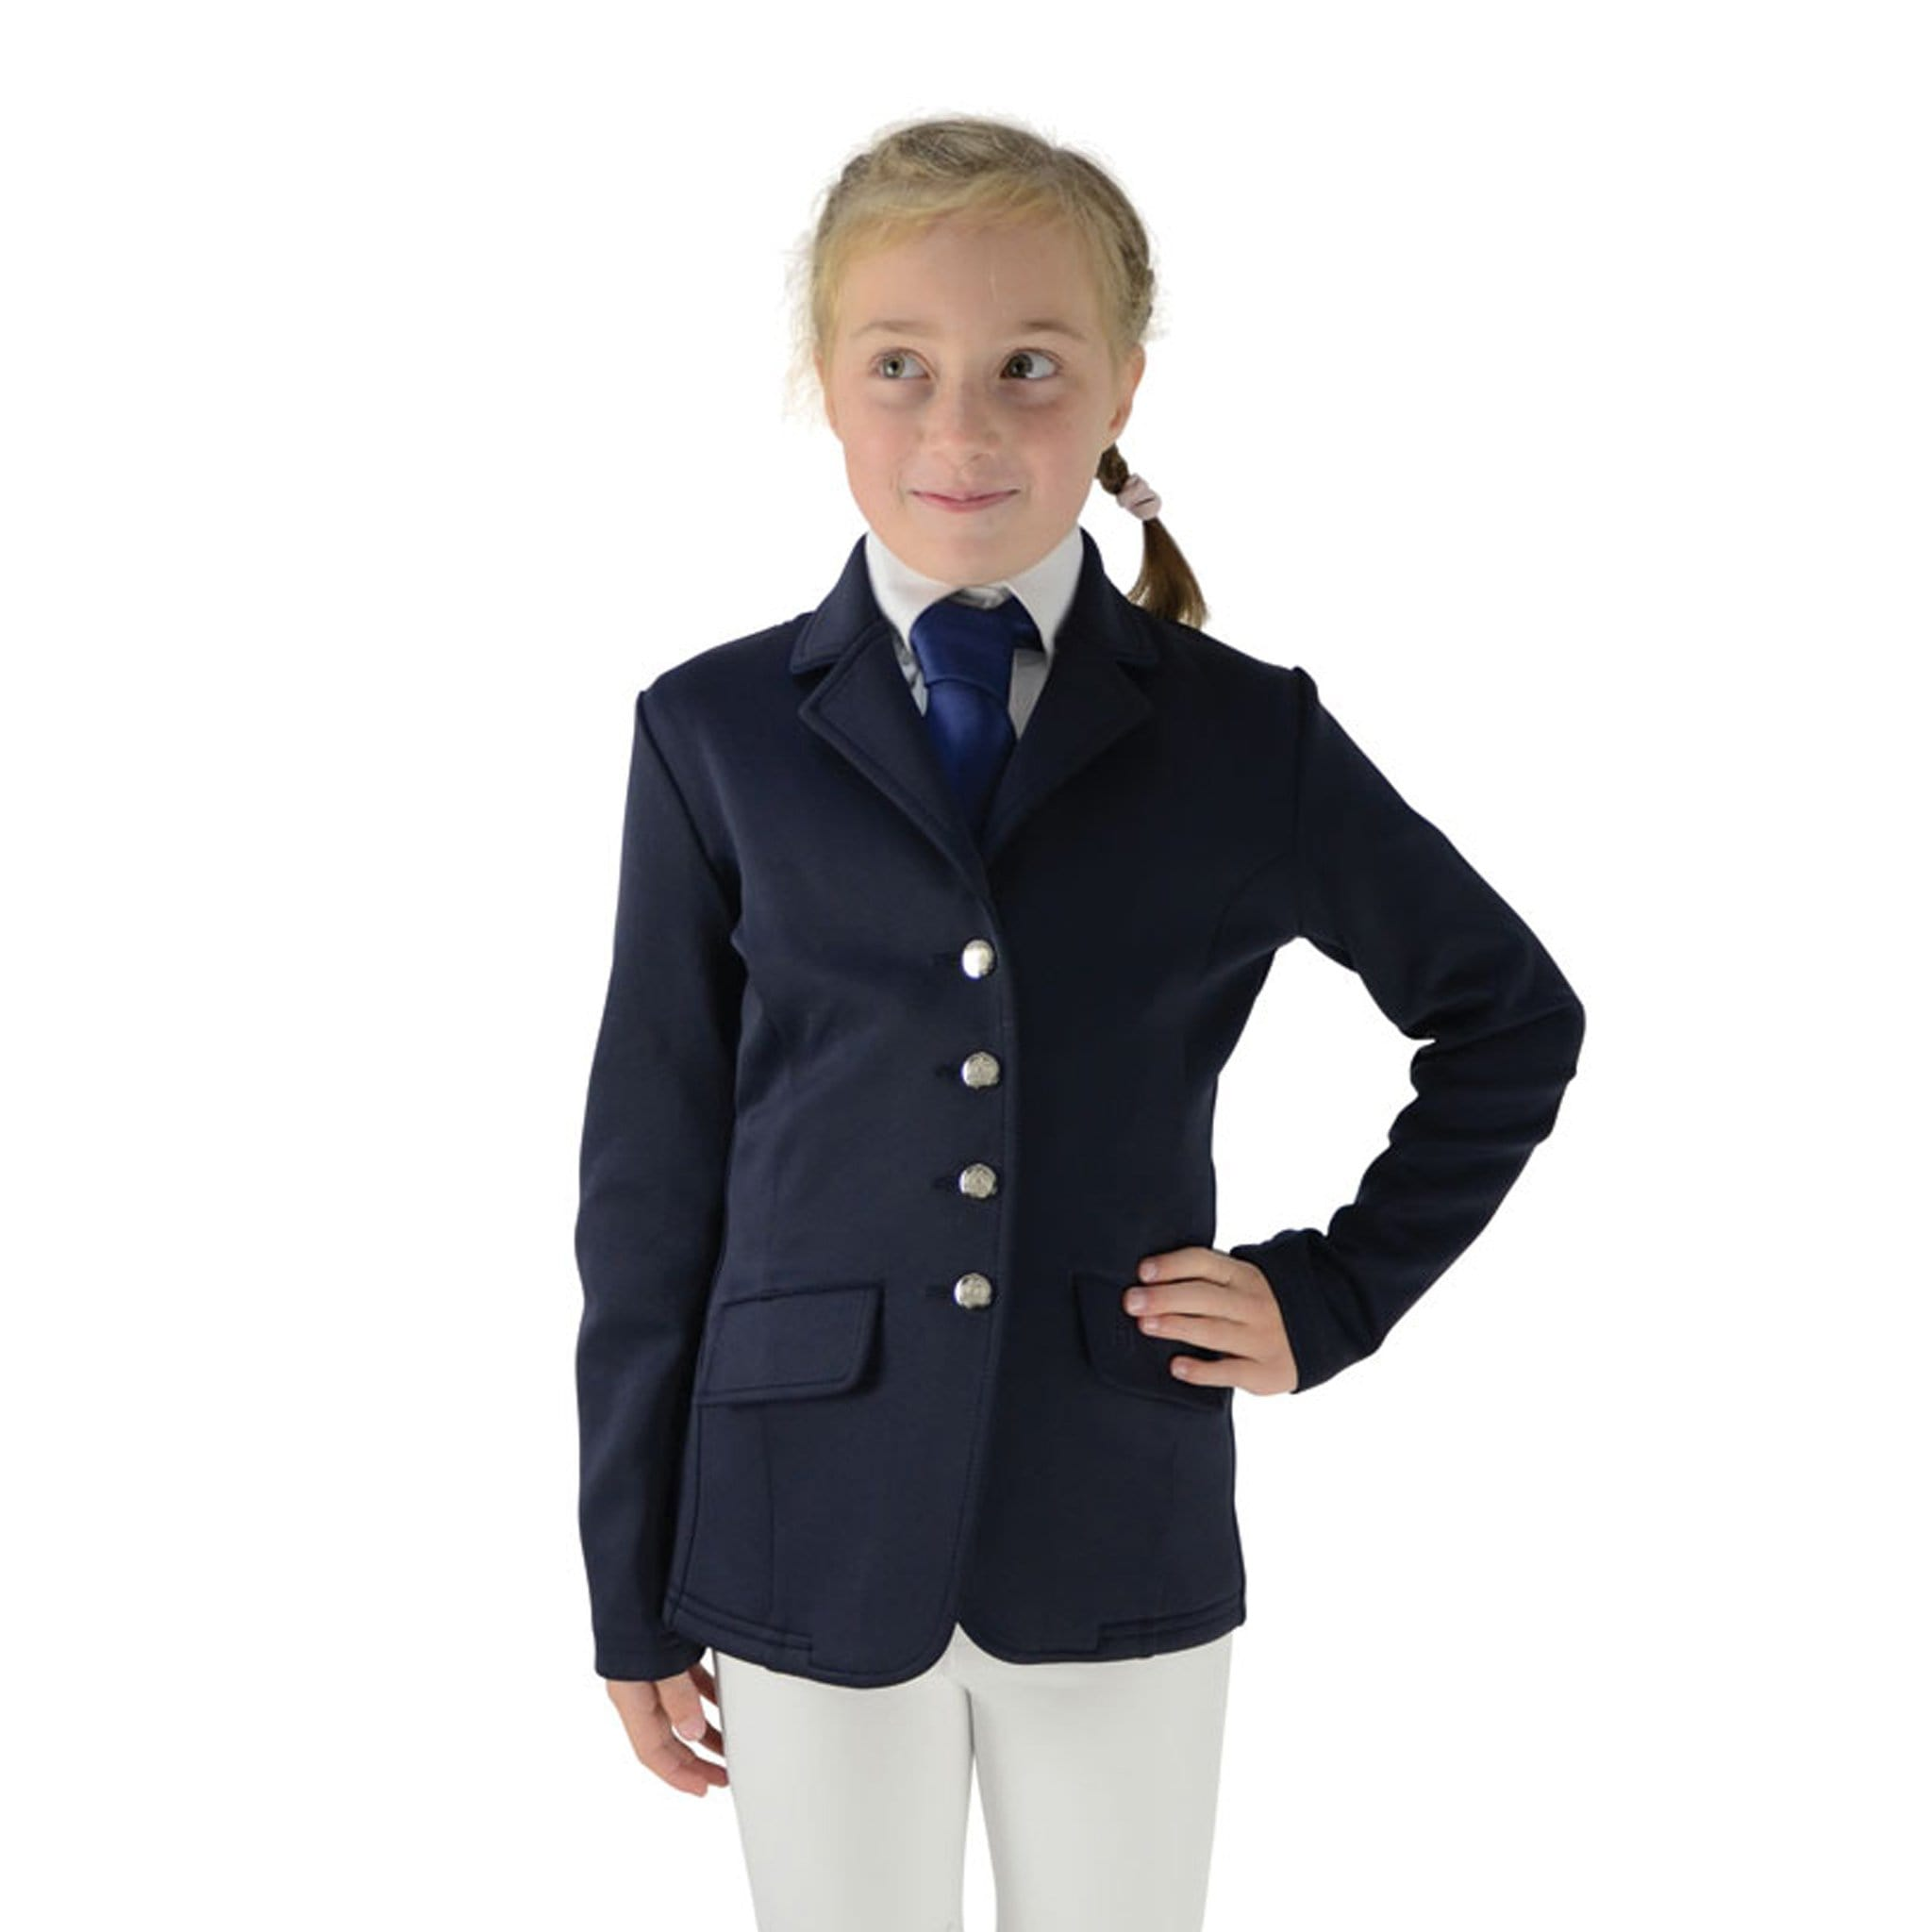 HyFASHION Children's Cotswold Competition Jacket 22365 Navy On Child Front